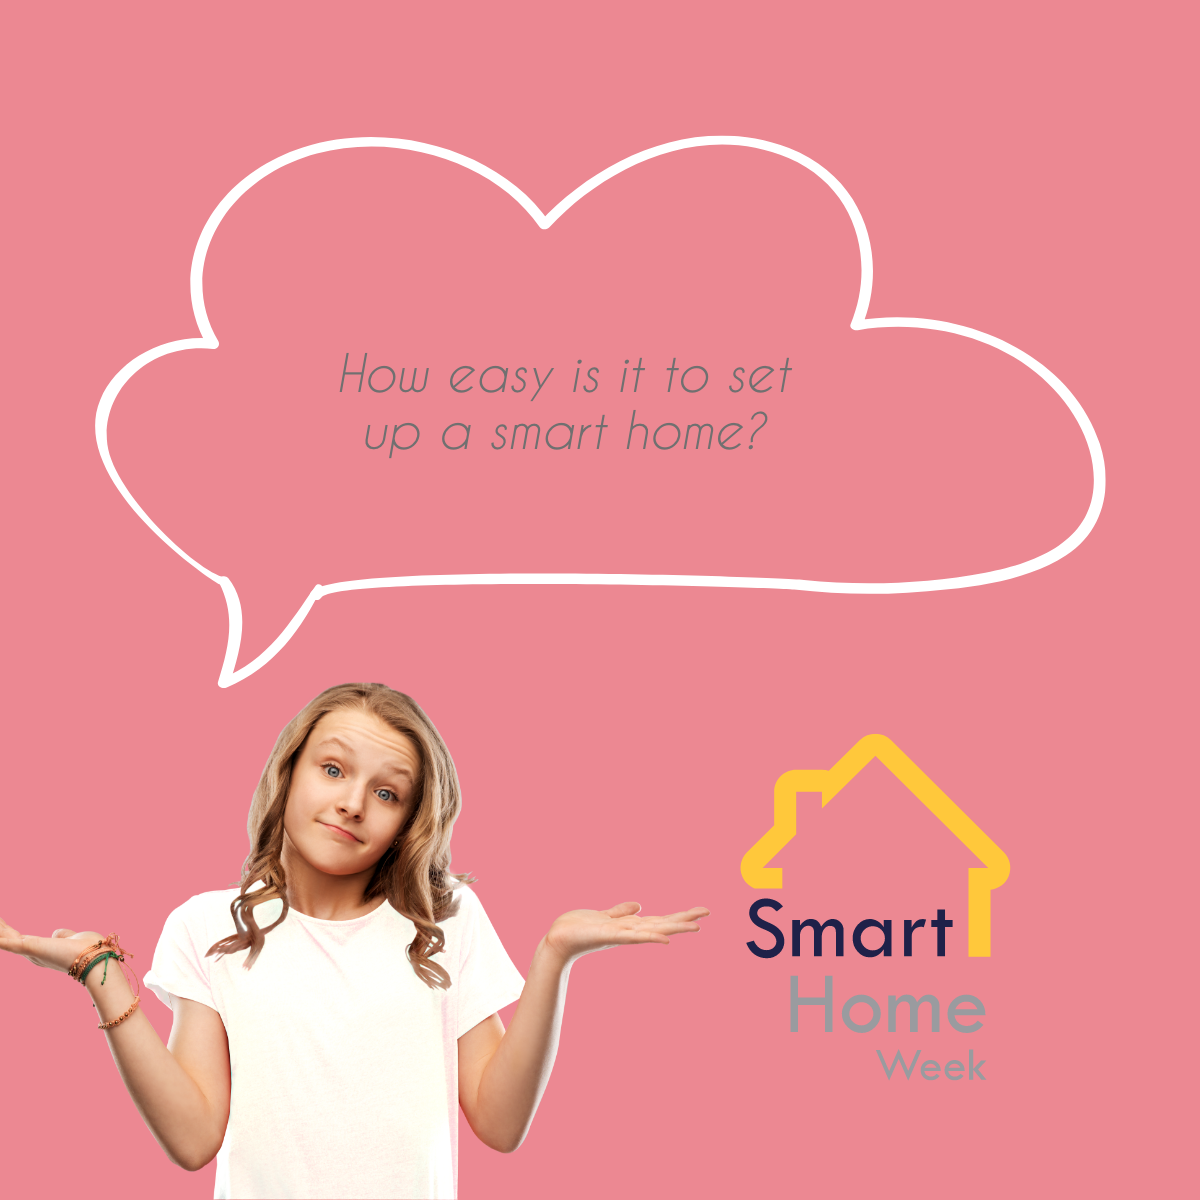 woman looking confused with a speech bubble saying How easy is it to set up a smart home